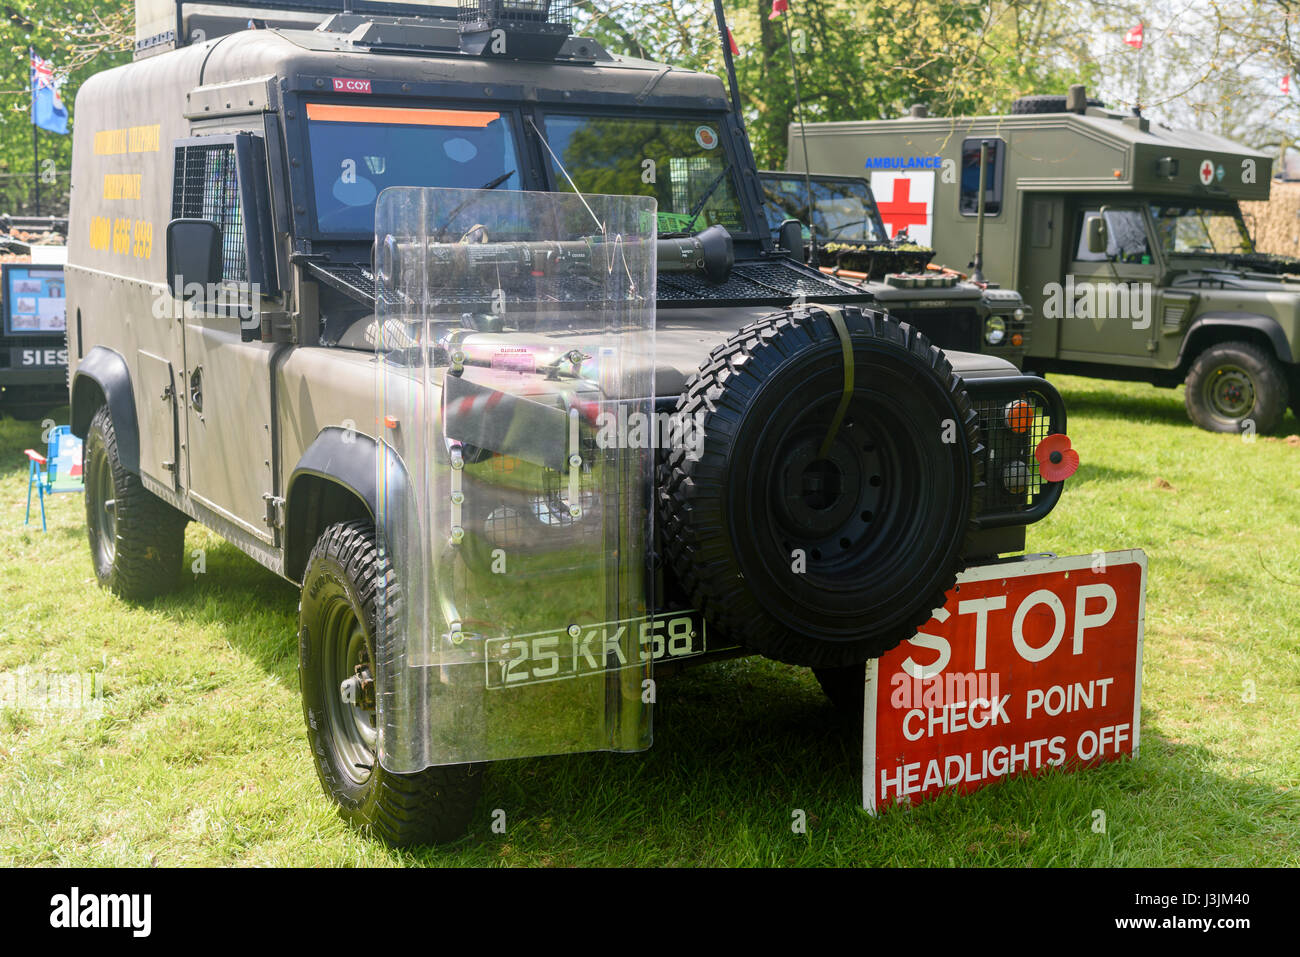 Army Landrover painted green, with a riot shield and 'STOP. Check point. Headlights off' sign, commonly - Stock Image